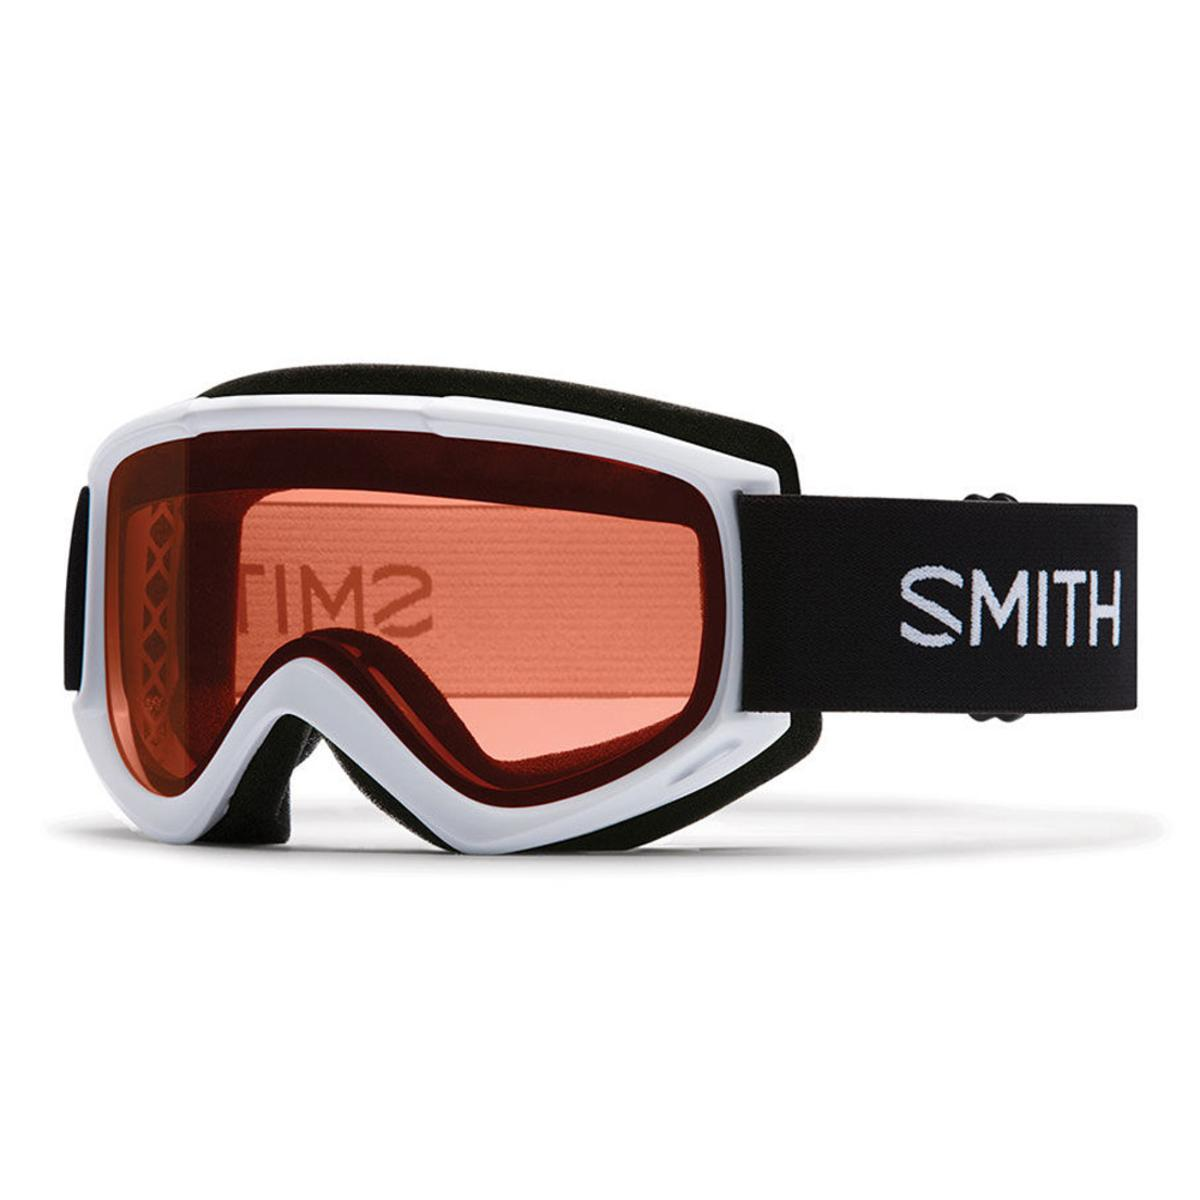 65adf8c4d6b5d Smith Optics Cascade Classic Snow Goggles - White Frame - The Warming Store